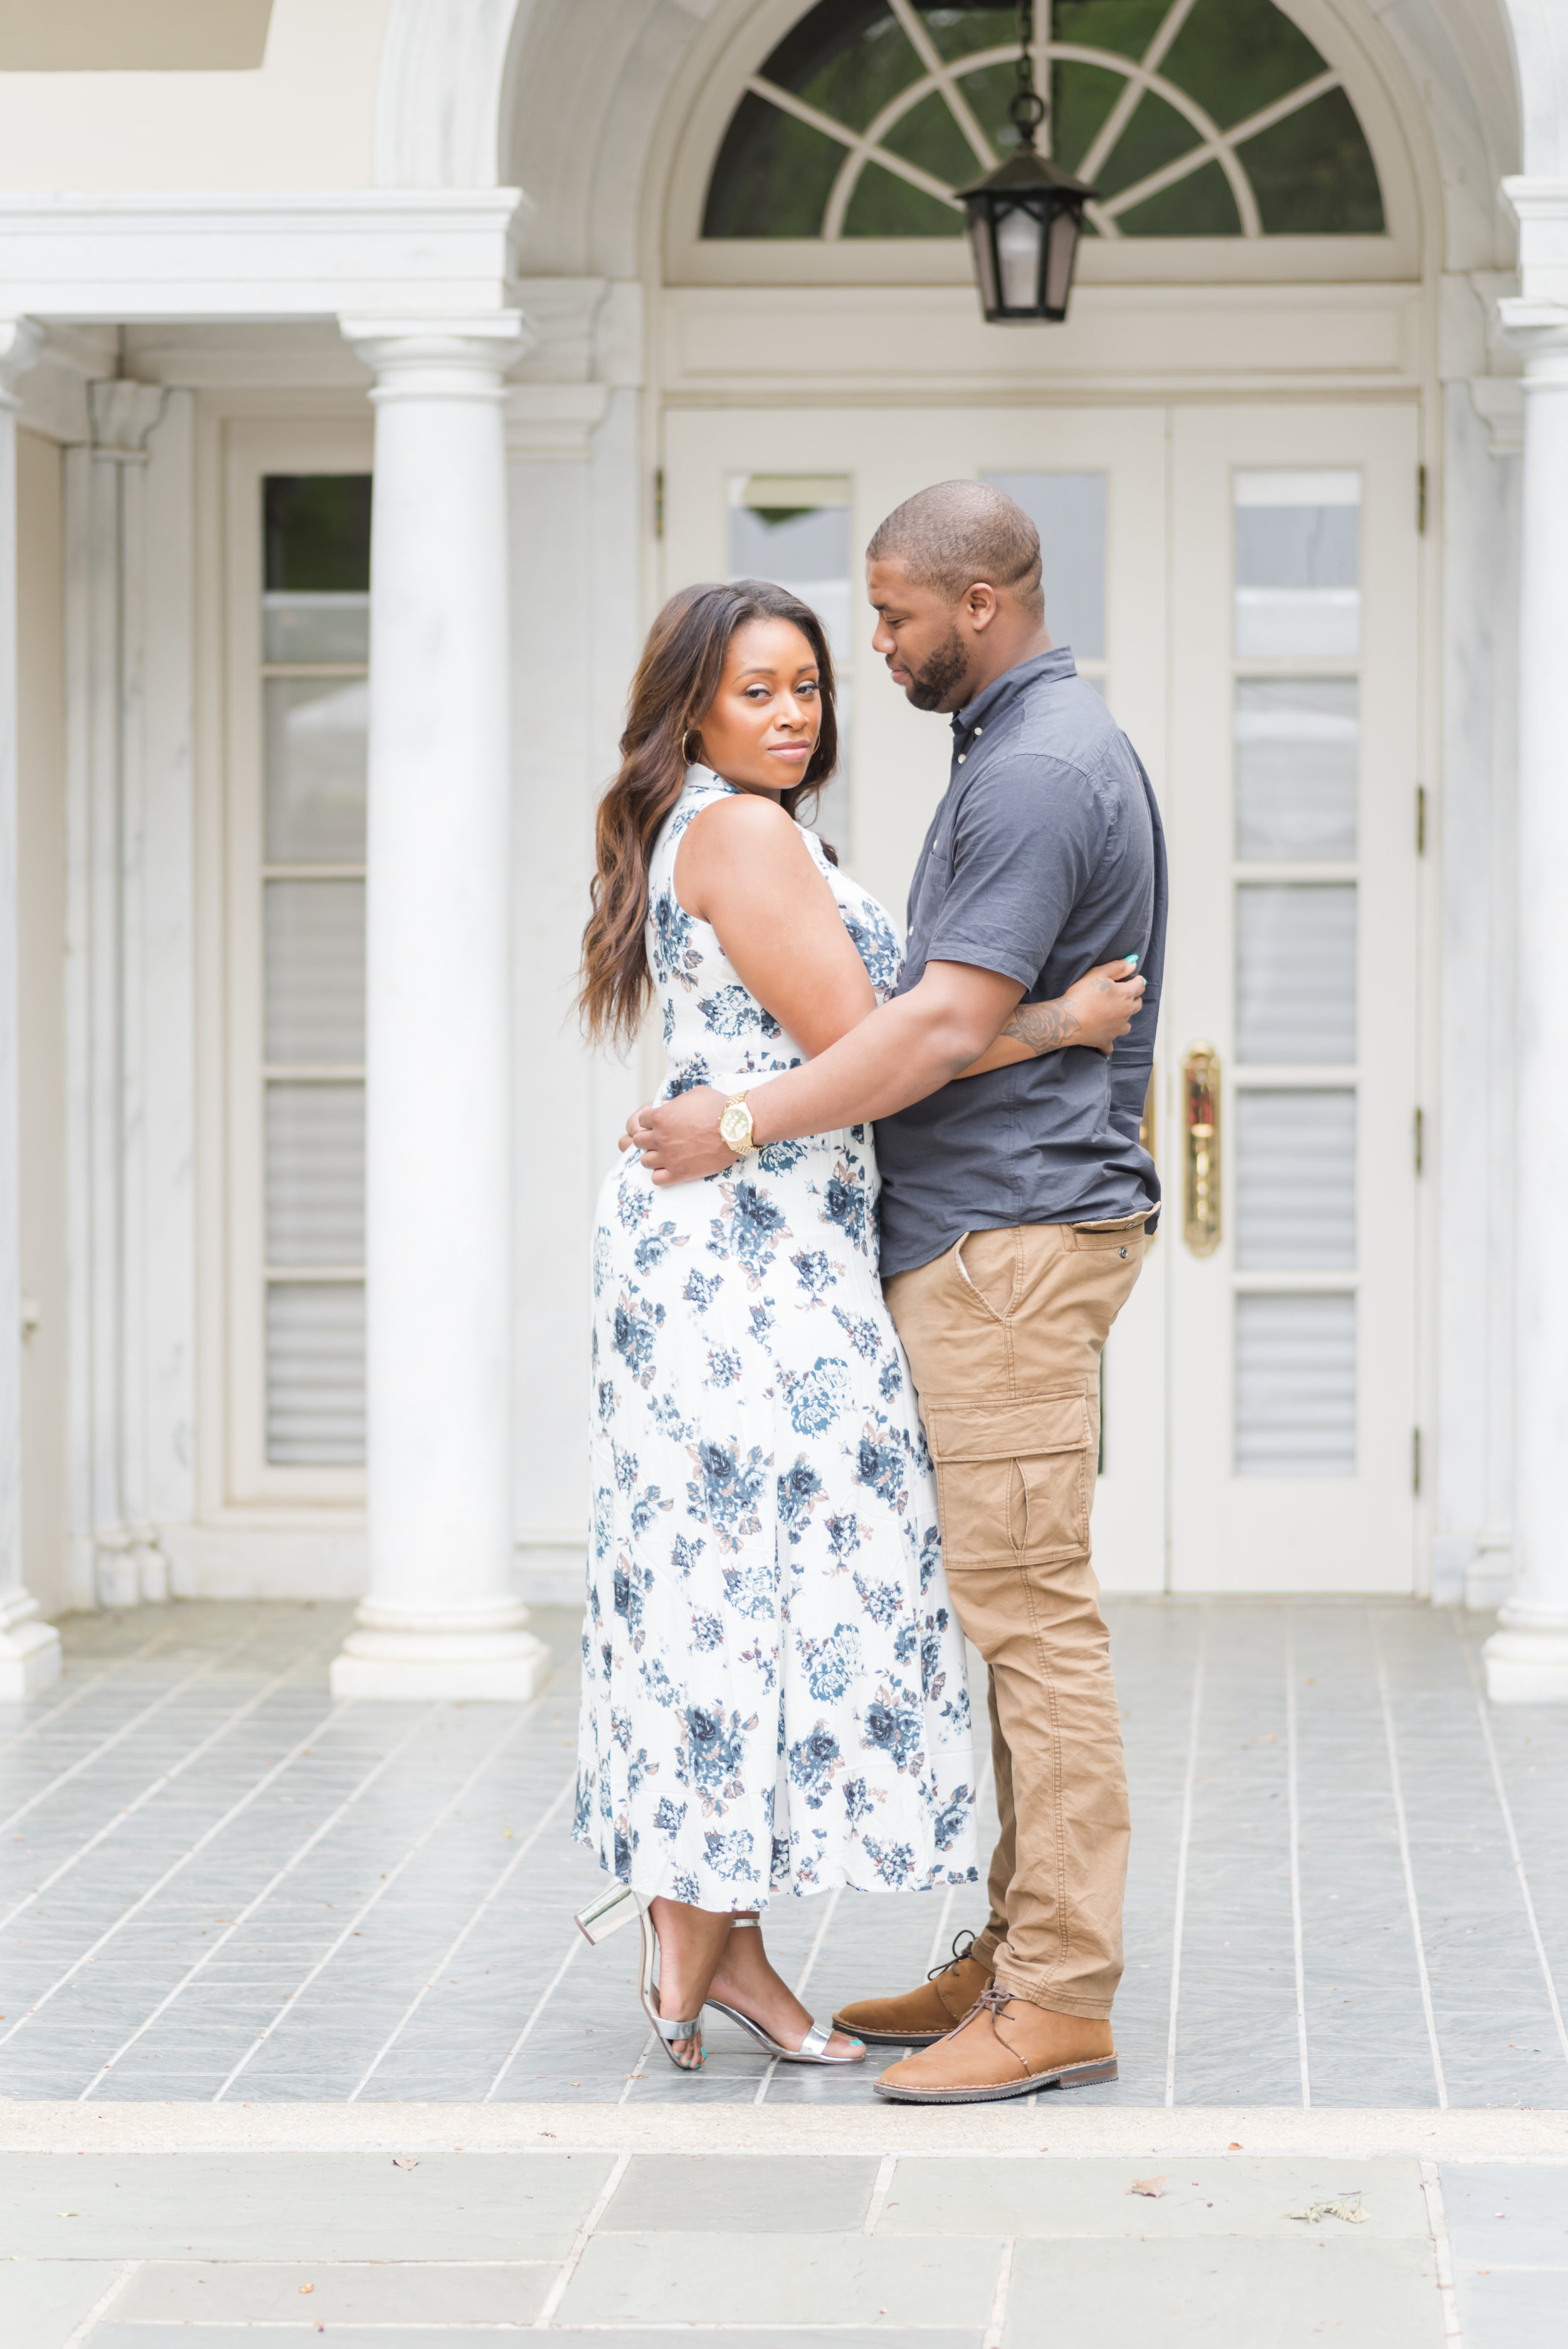 Cater Woolford Gardens Engagement Session 2.jpg